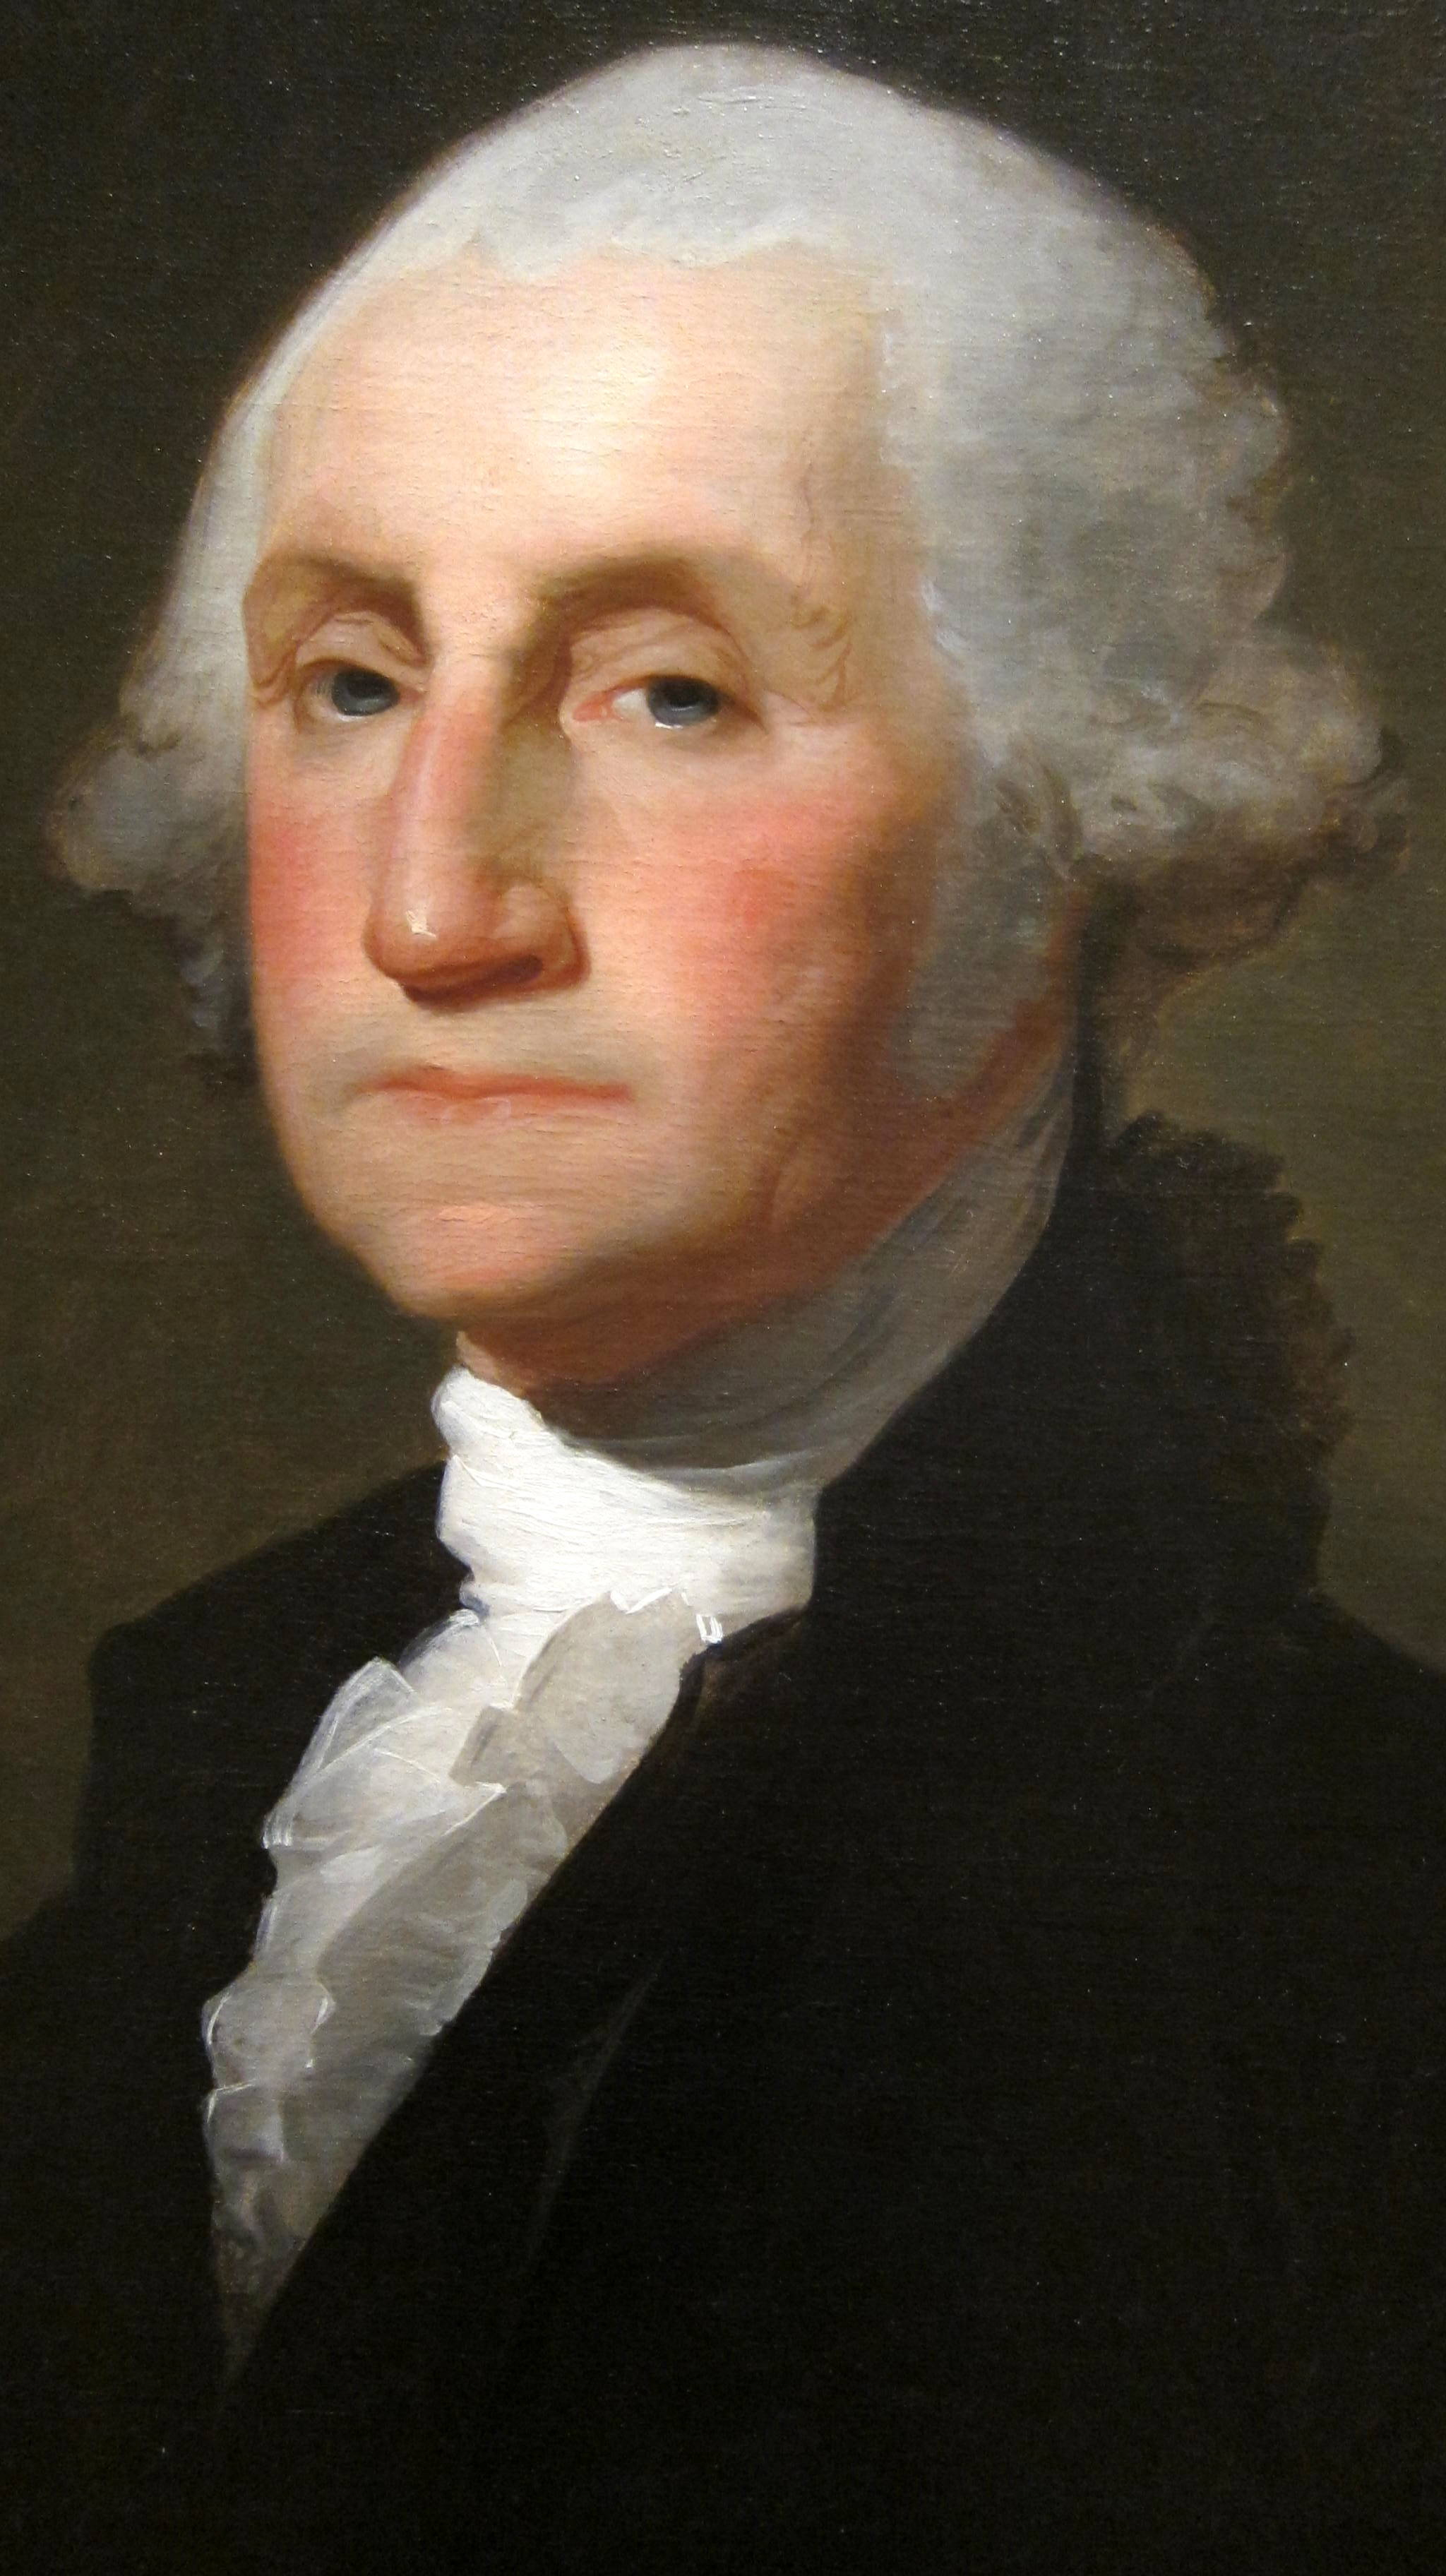 File:GEORGE WASHINGTON - Gilbert Stuart.JPG - Wikimedia Commons